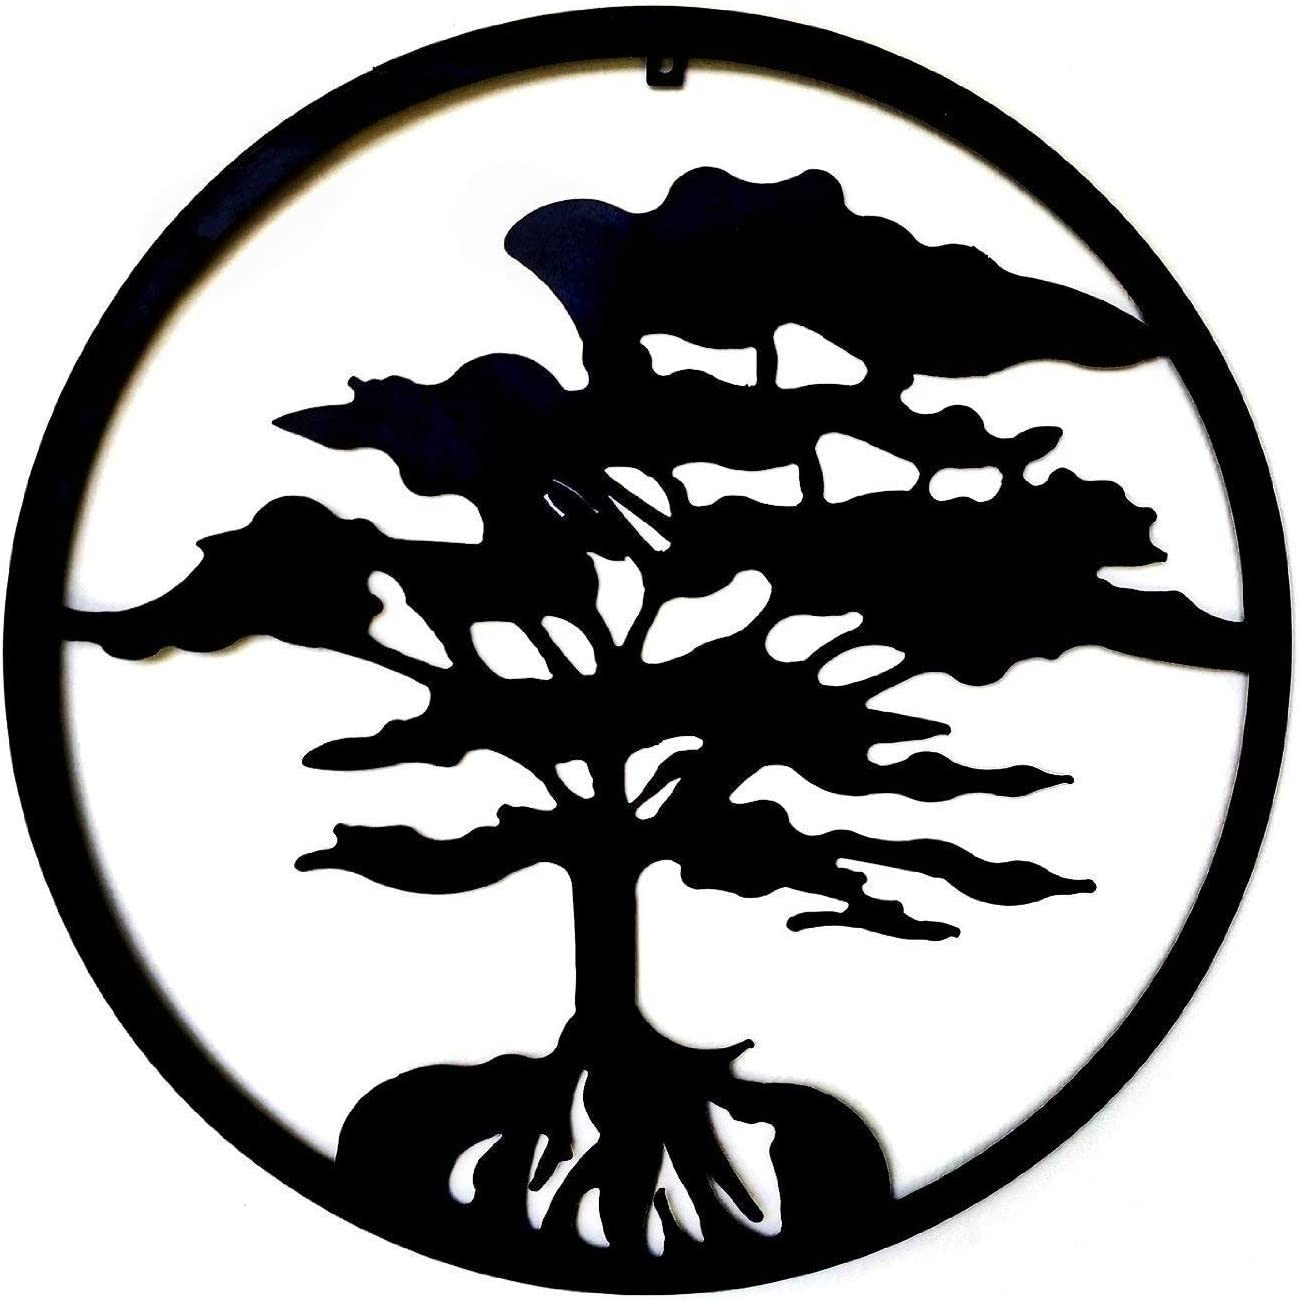 Bellaa 23521 Tree of Life Metal Wall Art Contemporary Home Office Decor Modern Sculptures Plaque Inspirational Celtic Family Trees Round Symbol Large 24 Inch